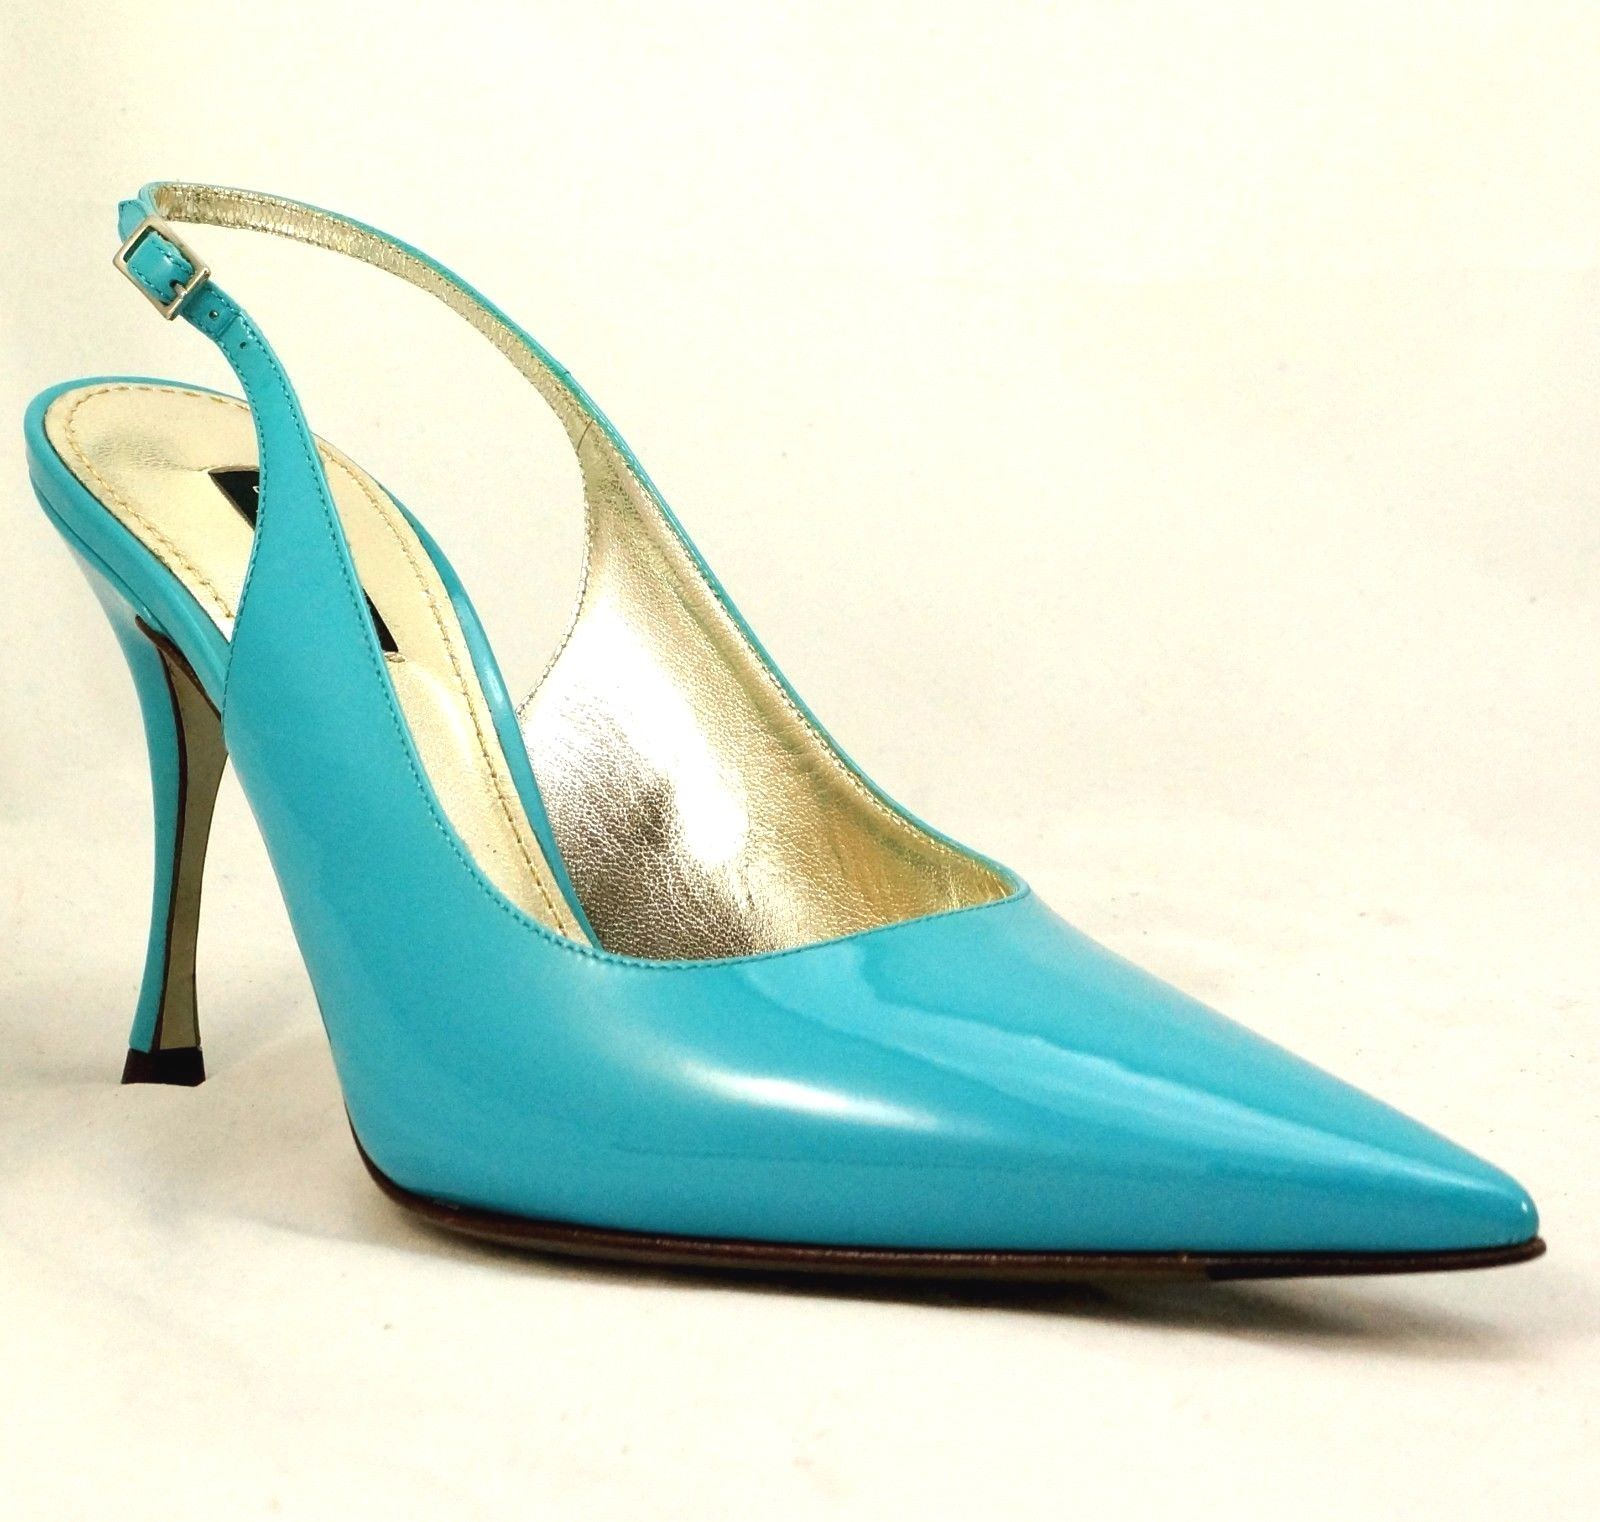 Dolce and gabbana Blue Leather Heel.